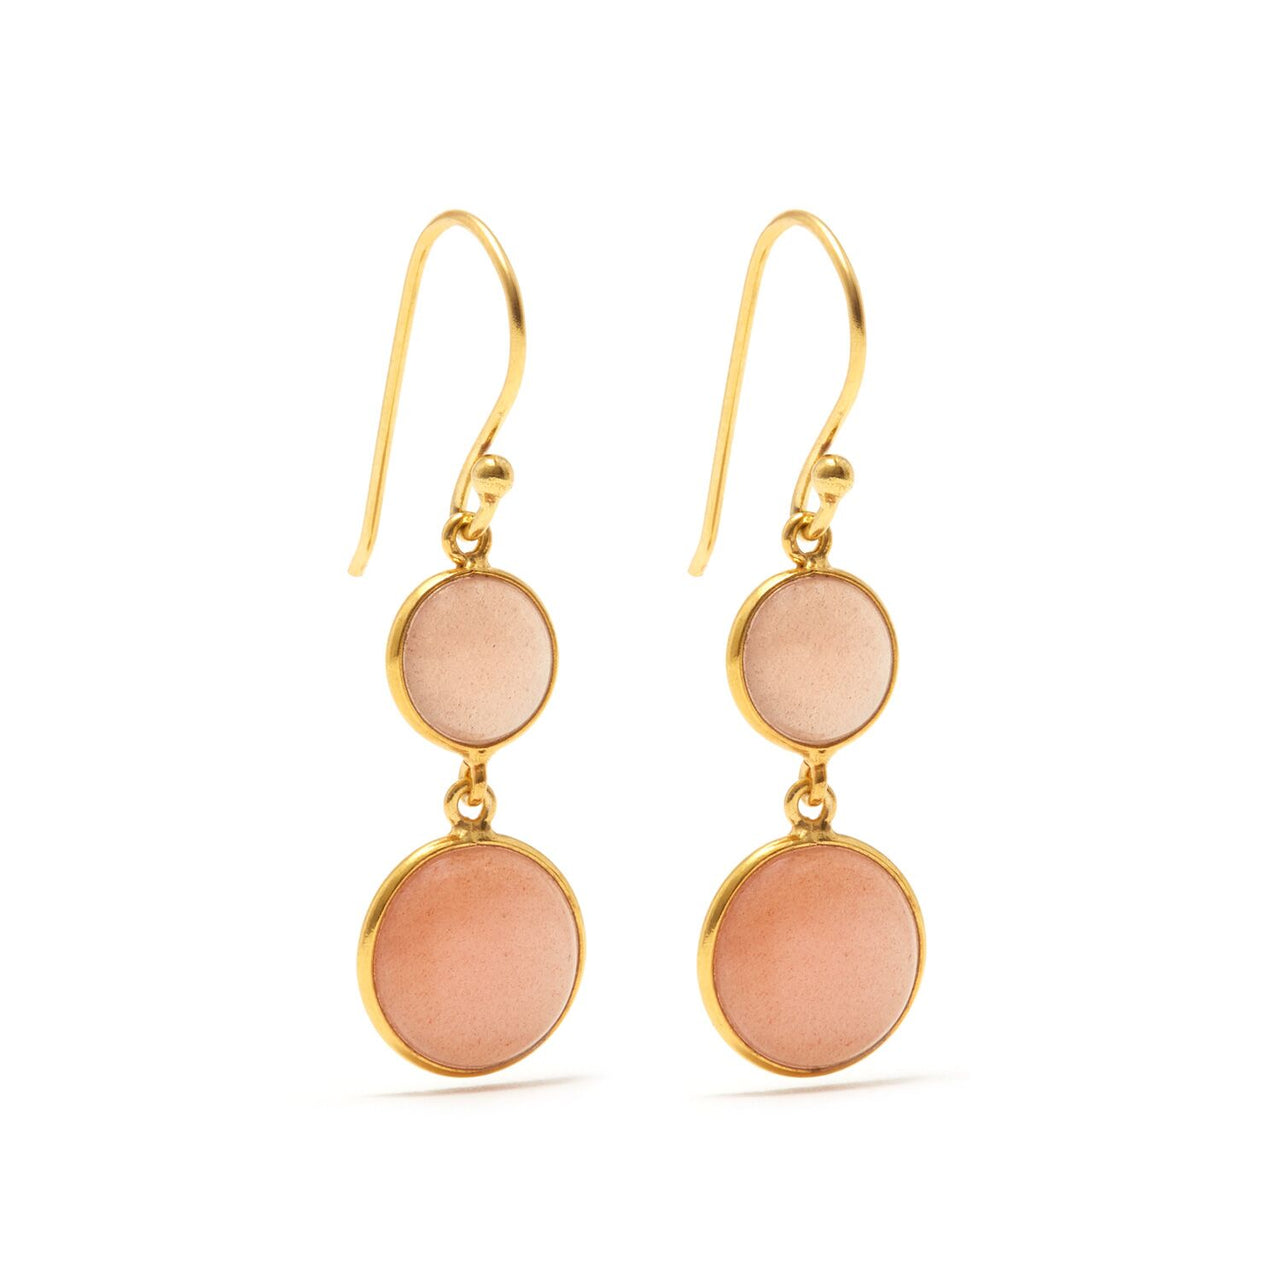 Jaipur Atelier Moon Blush 2 Earring